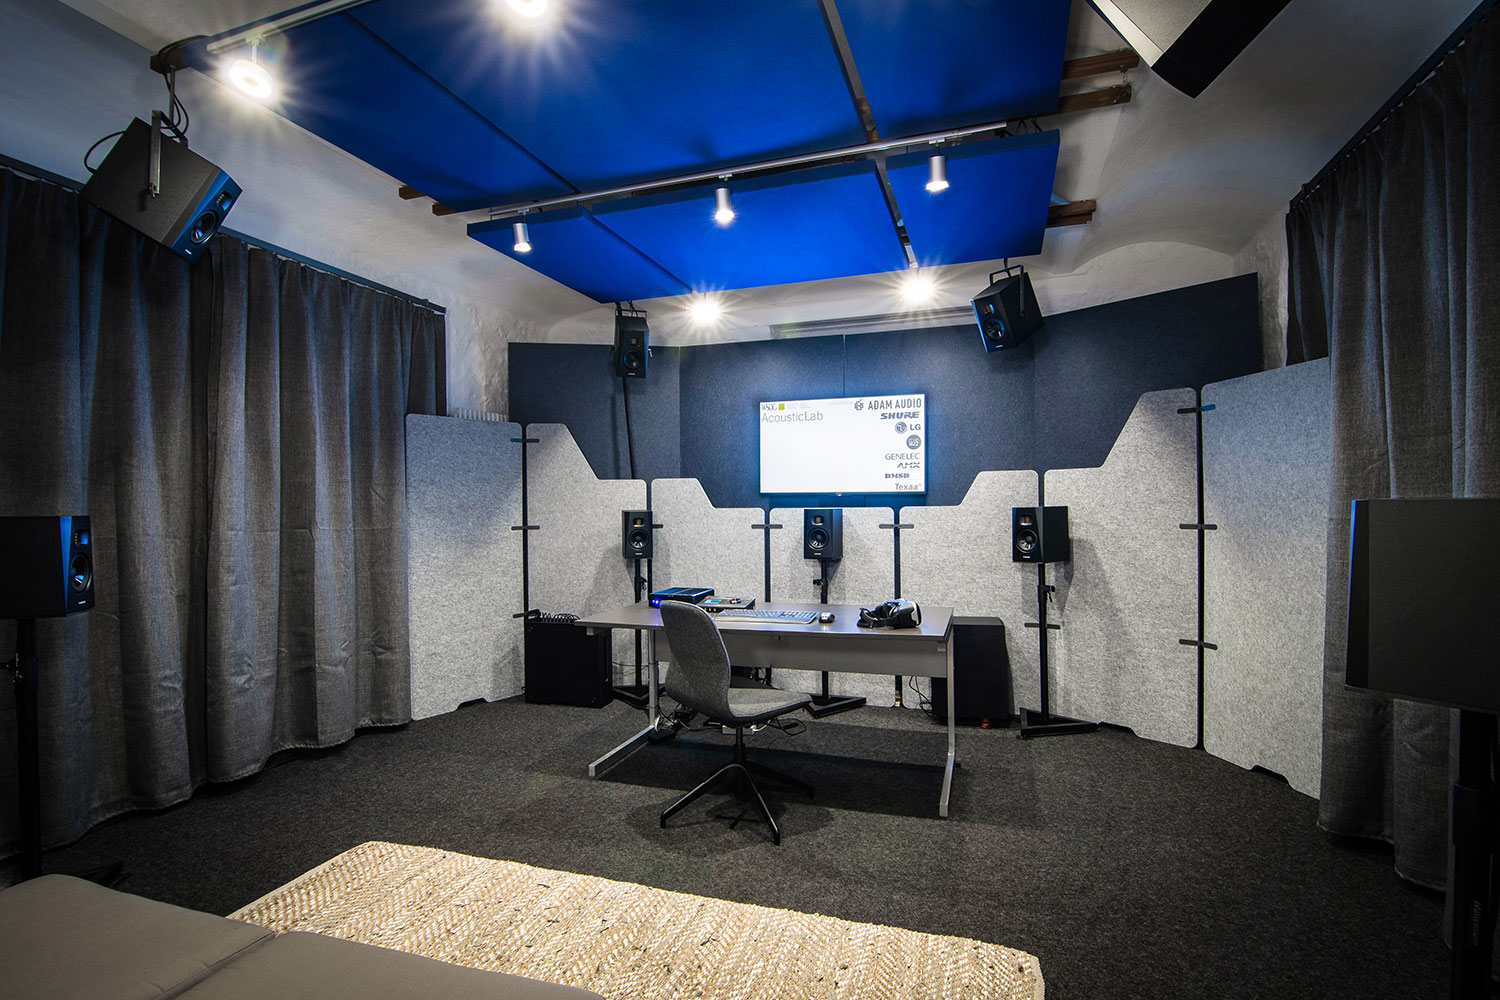 WSDG AcousticLab in Basel, Switzerland. Space designed to accurately demonstrate and reproduce different spaces auralization. Front View w Center Speaker.